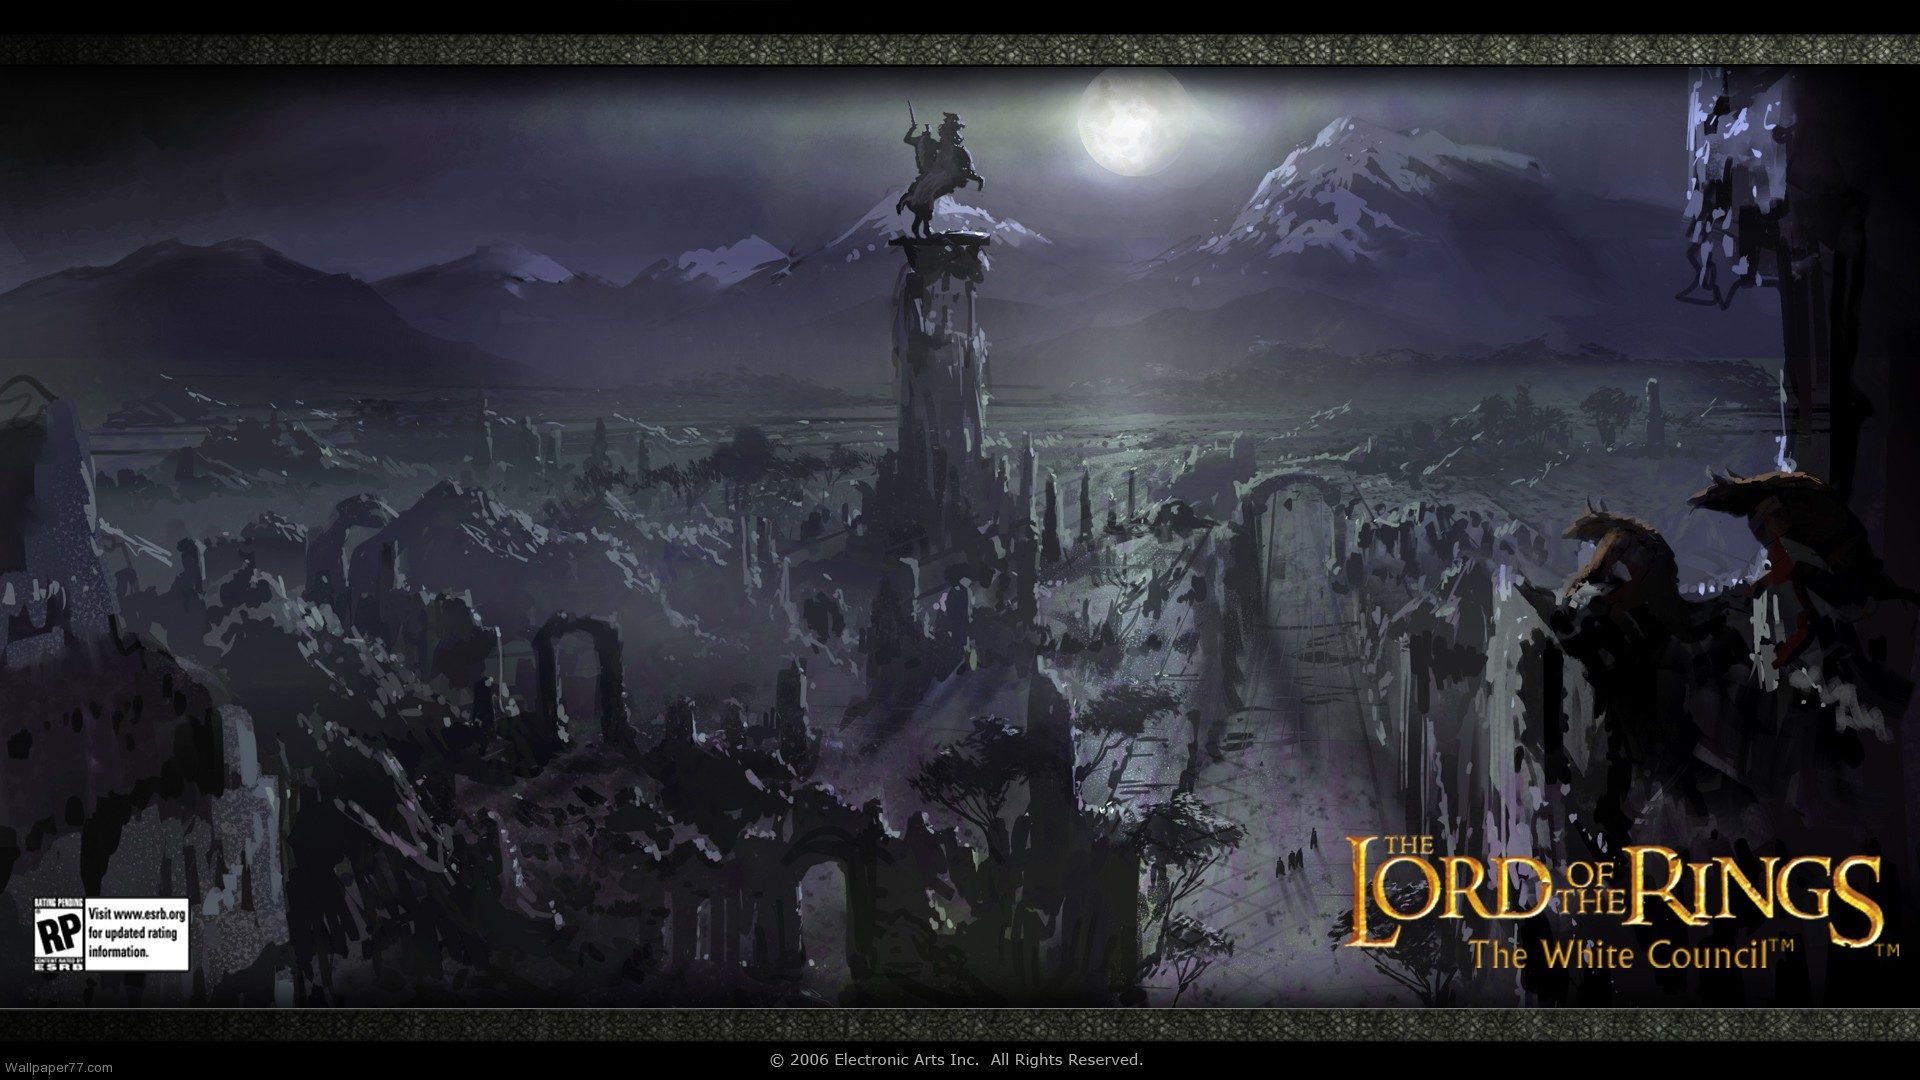 lord of the rings wallpaperslord of the rings wallpaper  1920x1080jpg 1920x1080